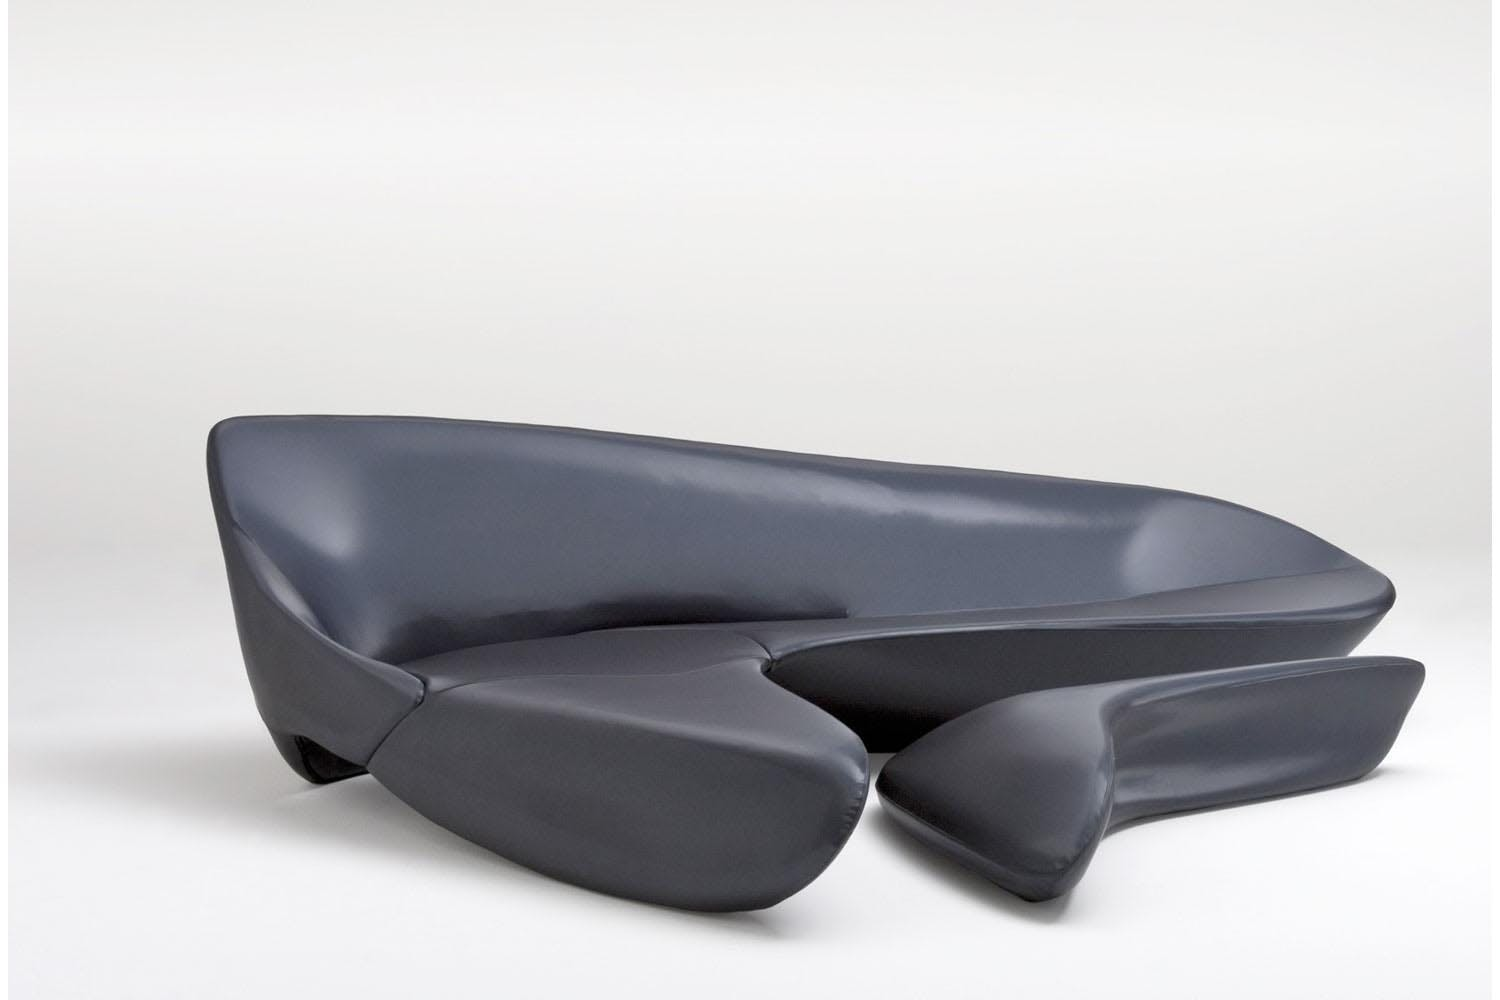 Moon system sofa by zaha hadid for b b italia space for Divano zaha hadid